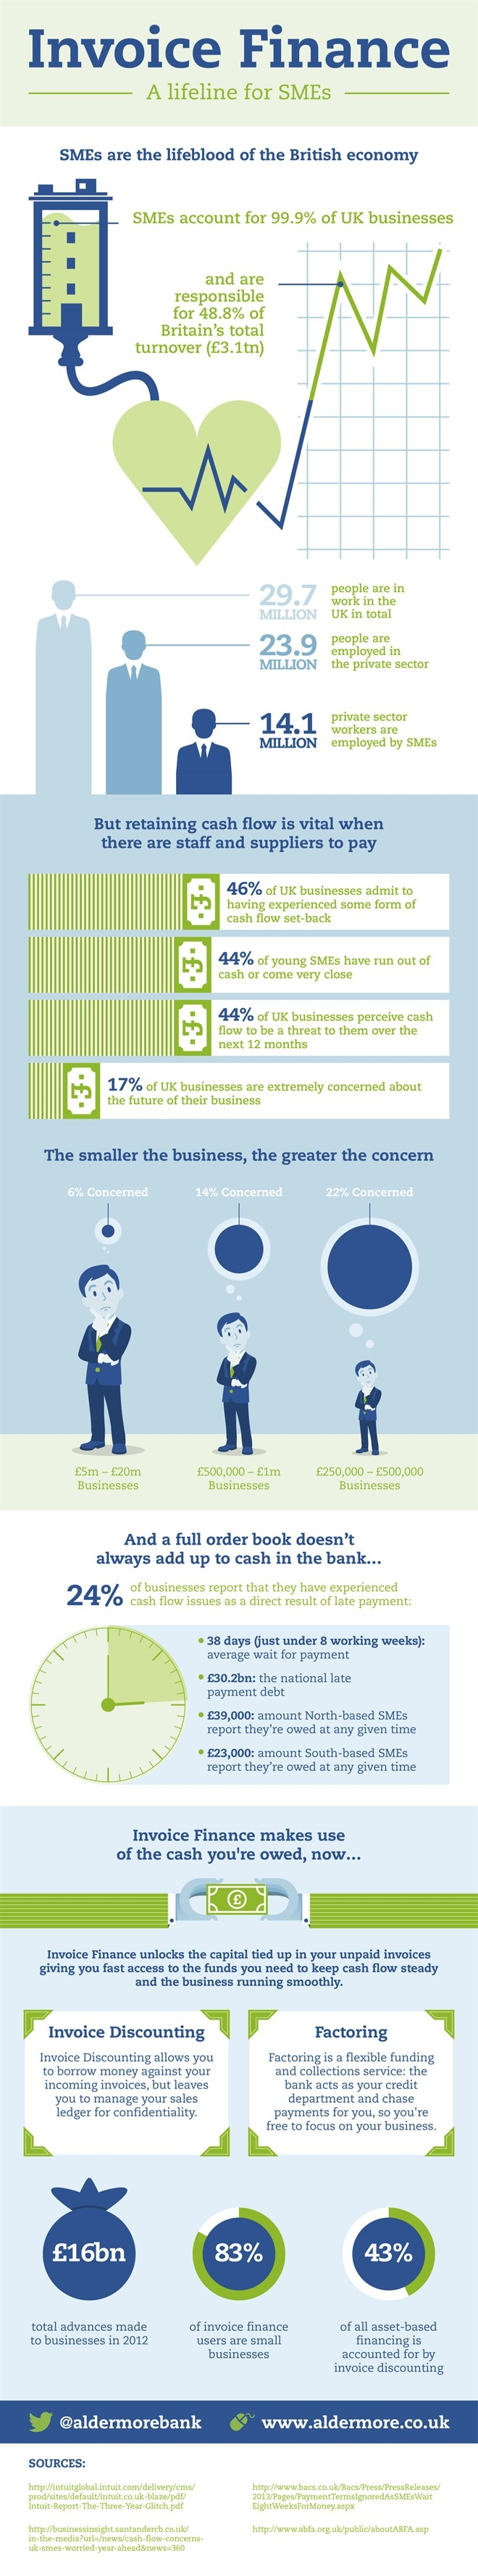 facts and statistics of invoice finance a lifeline for smes sme invoice finance ltd